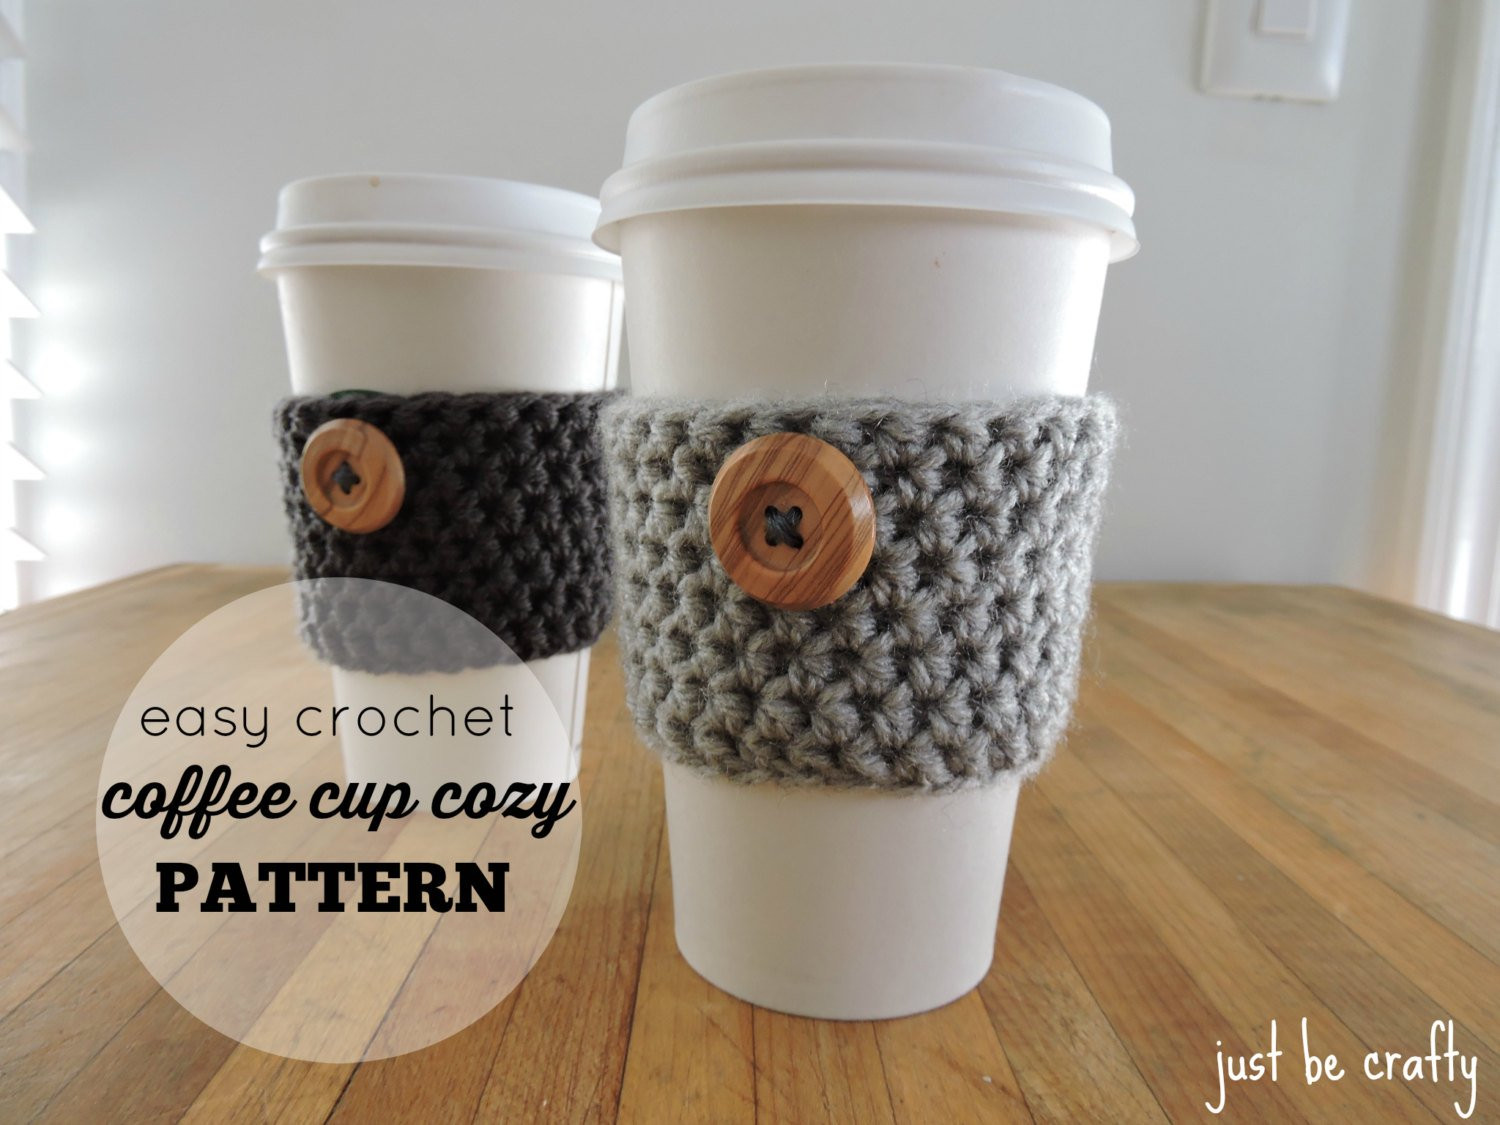 Crochet Coffee Cup Cozy Inspirational Crochet Coffee Cup Cozy Pattern Pdf Download Coffee Cup Cozy Of Crochet Coffee Cup Cozy Elegant Sunny Stitching Pinned It & Did It Mug Cozy Crochet